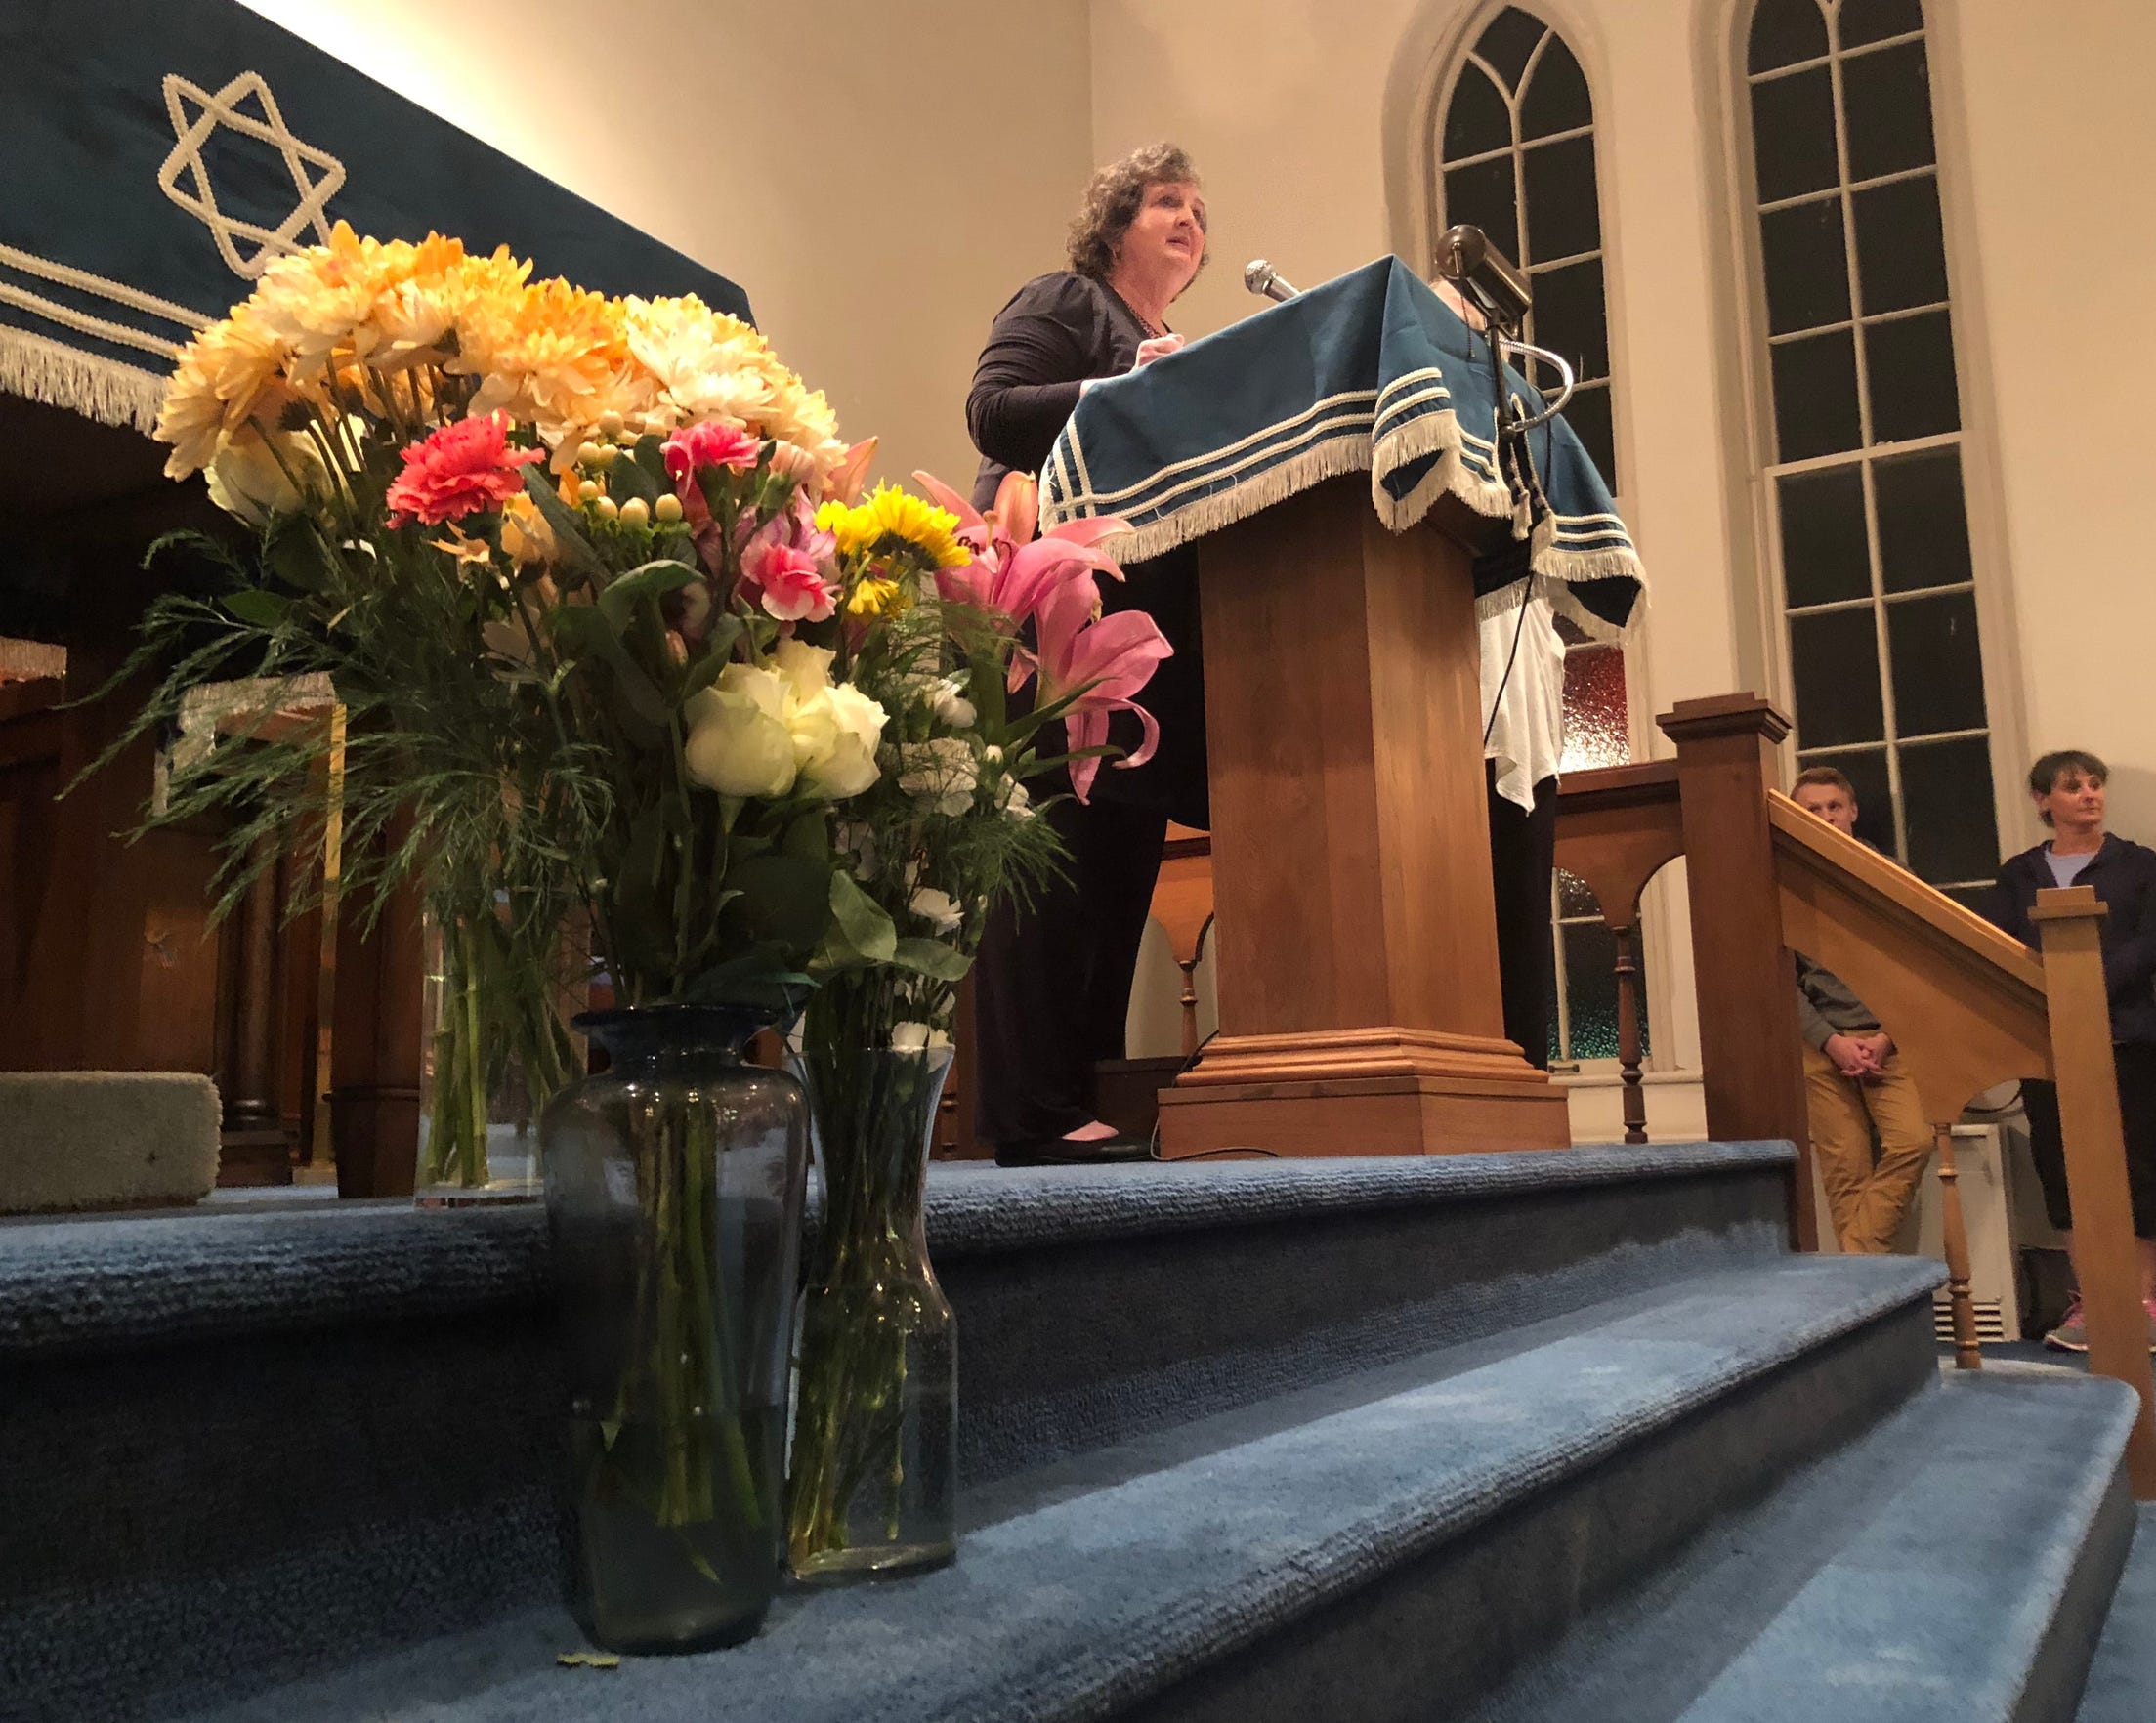 Flowers can be seen in the front of the room at Congregation Sons of Israel in Chambersburg during a memorial service the evening of Tuesday, Oct. 30. The event was held to honor 11 Jewish people who were killed in a shooting in Pittsburgh a few days earlier, and the flowers were left on the steps of the building by an anonymous person the day of the attack. Also pictured: Borough councilmember Sharon Bigler.